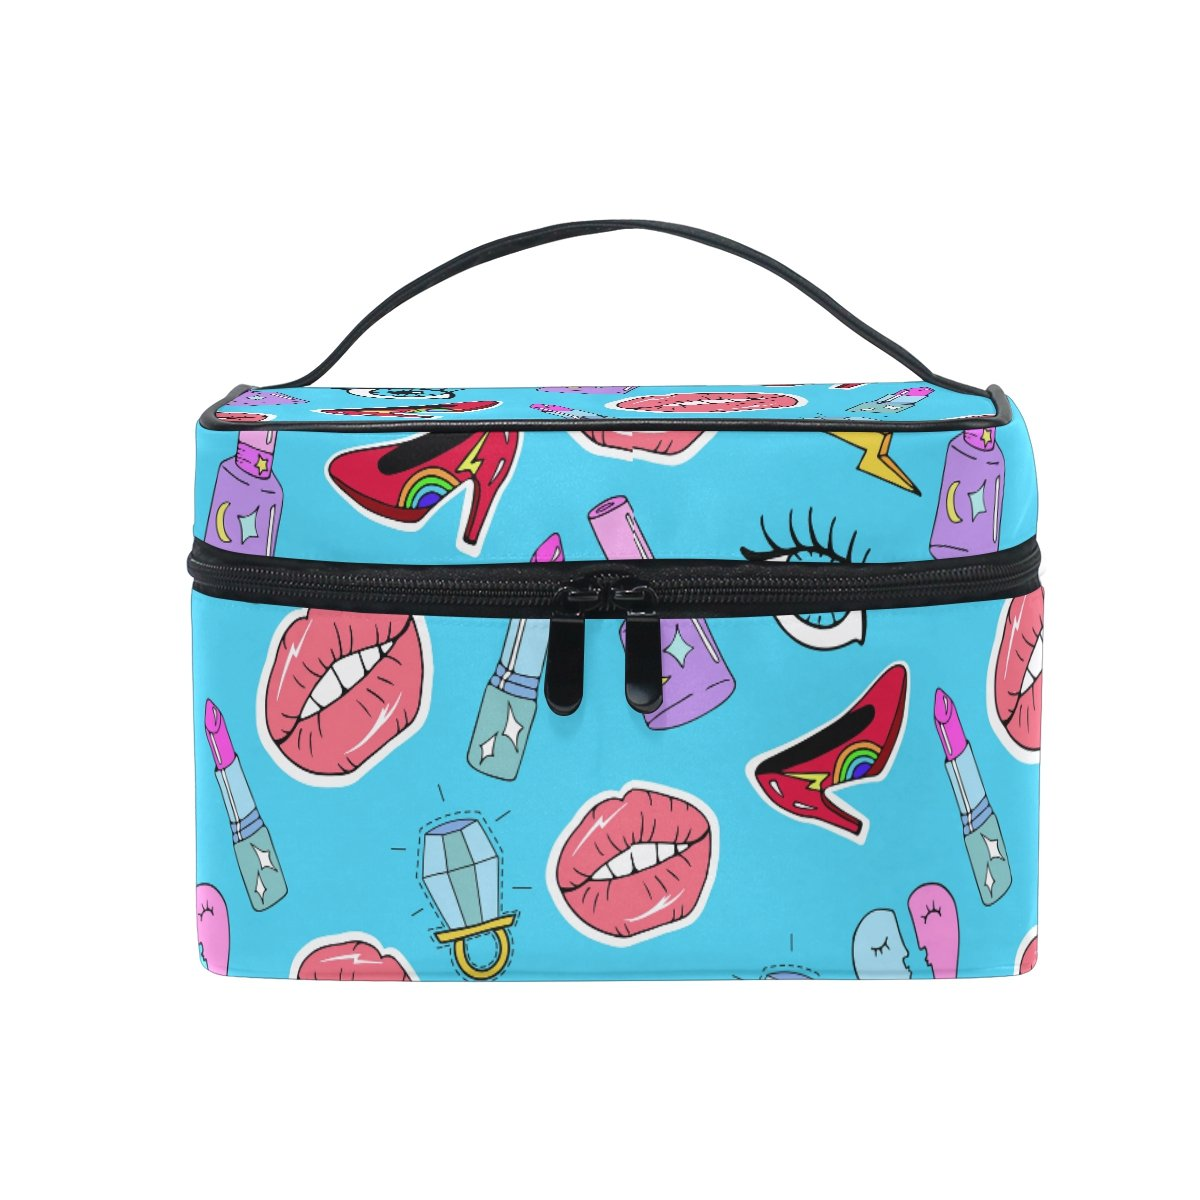 Makeup Bag Eye Lipstick Heels Travel Cosmetic Bags Organizer Train Case Toiletry Make Up Pouch